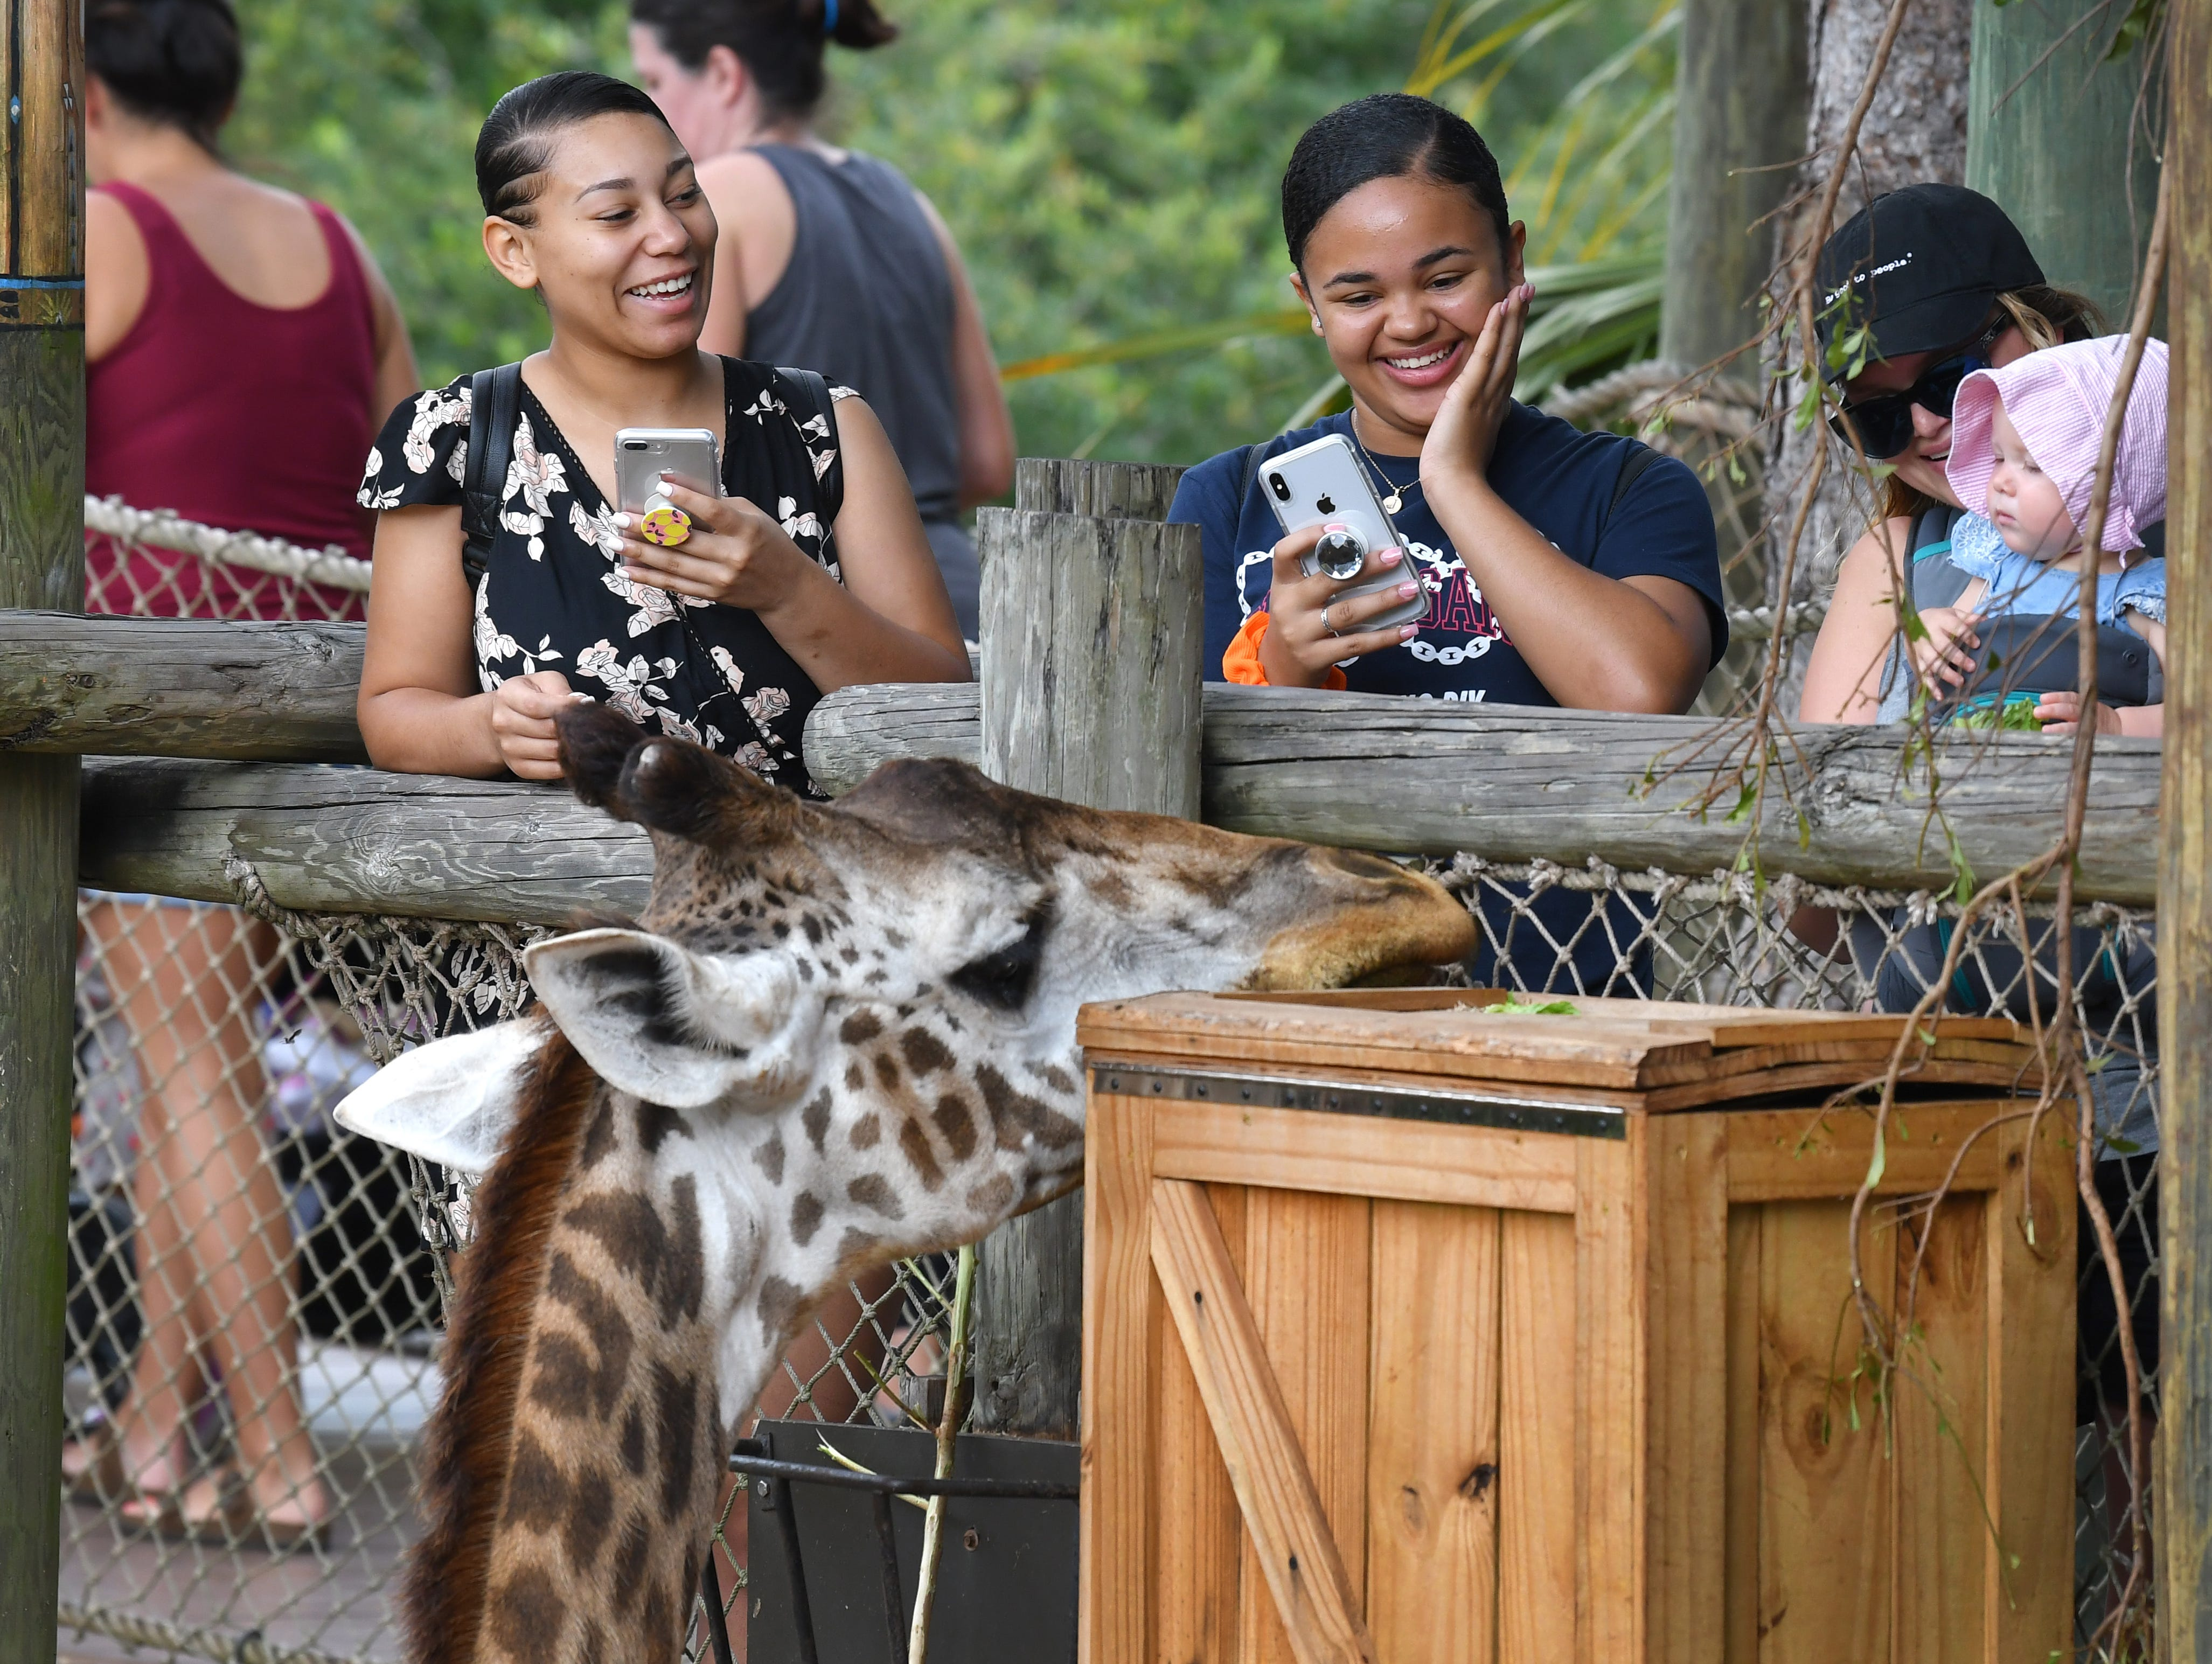 The Brevard Zoo in Viera is a popular visit for locals and tourists alike.